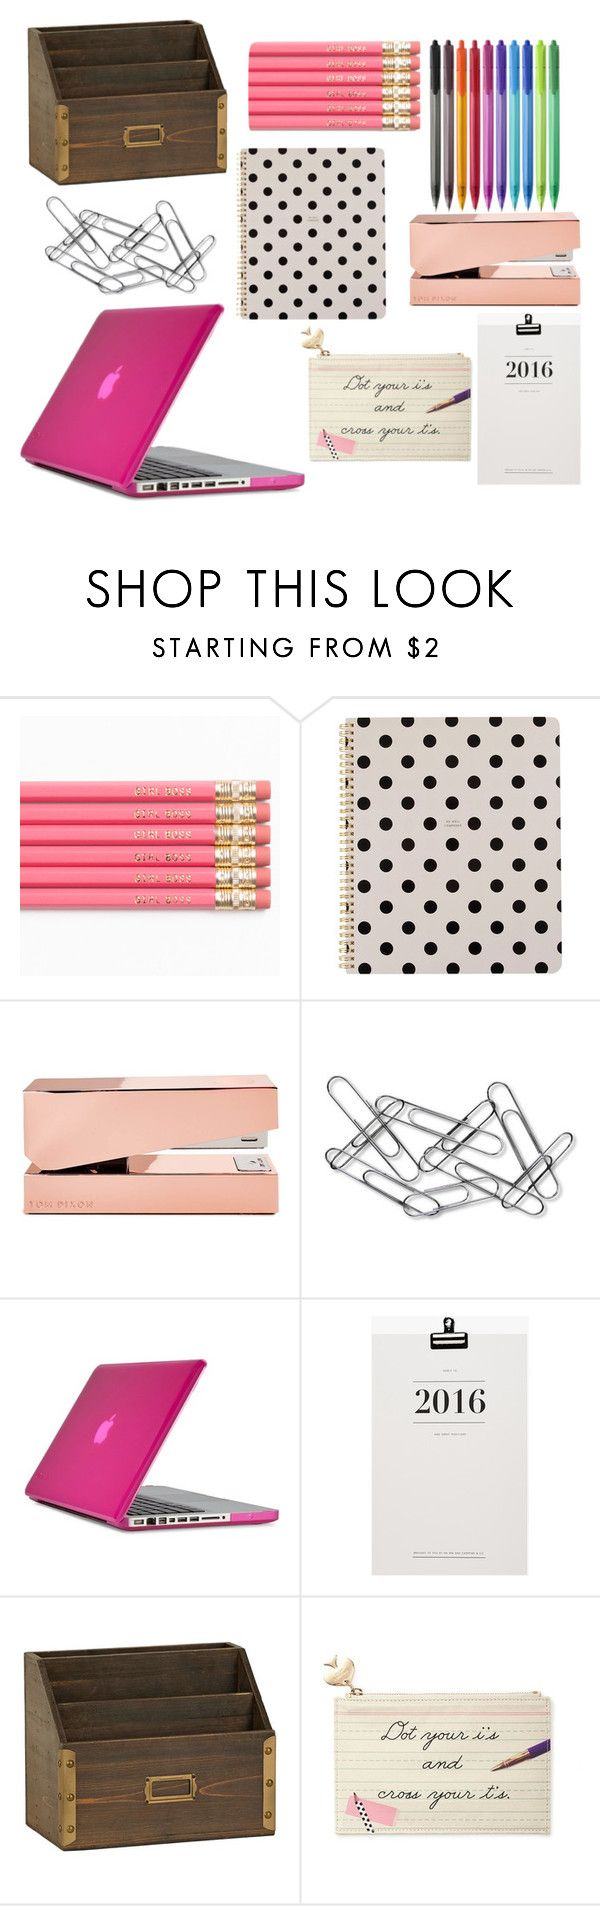 """Cute Office Supplies"" by peacefreak27 ❤ liked on Polyvore featuring interior, interiors, interior design, home, home decor, interior decorating, Paper Mate, Kate Spade, Tom Dixon and Home Decorators Collection"